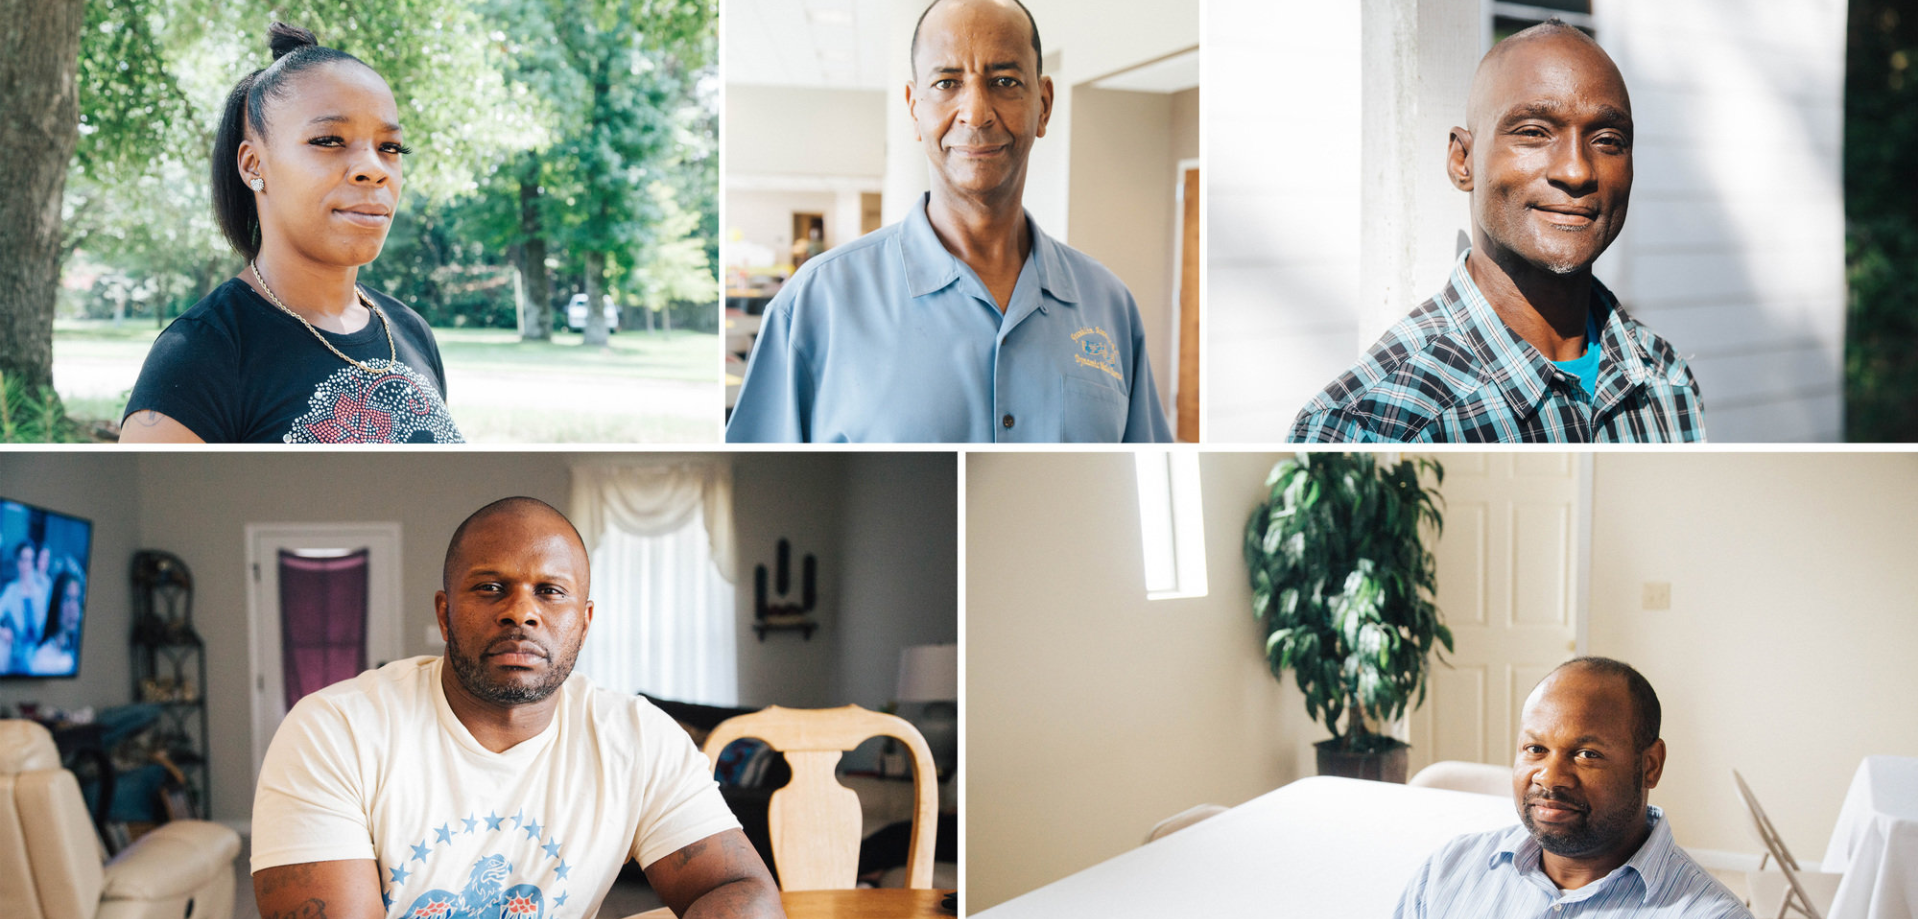 Clockwise from top left: Patrice Sparks, Clint Williams, Lionel Paul Dugas, Charles Blue and Detric Linner. PHOTOGRAPHS BY AKASHA RABUT FOR THE MARSHALL PROJECT